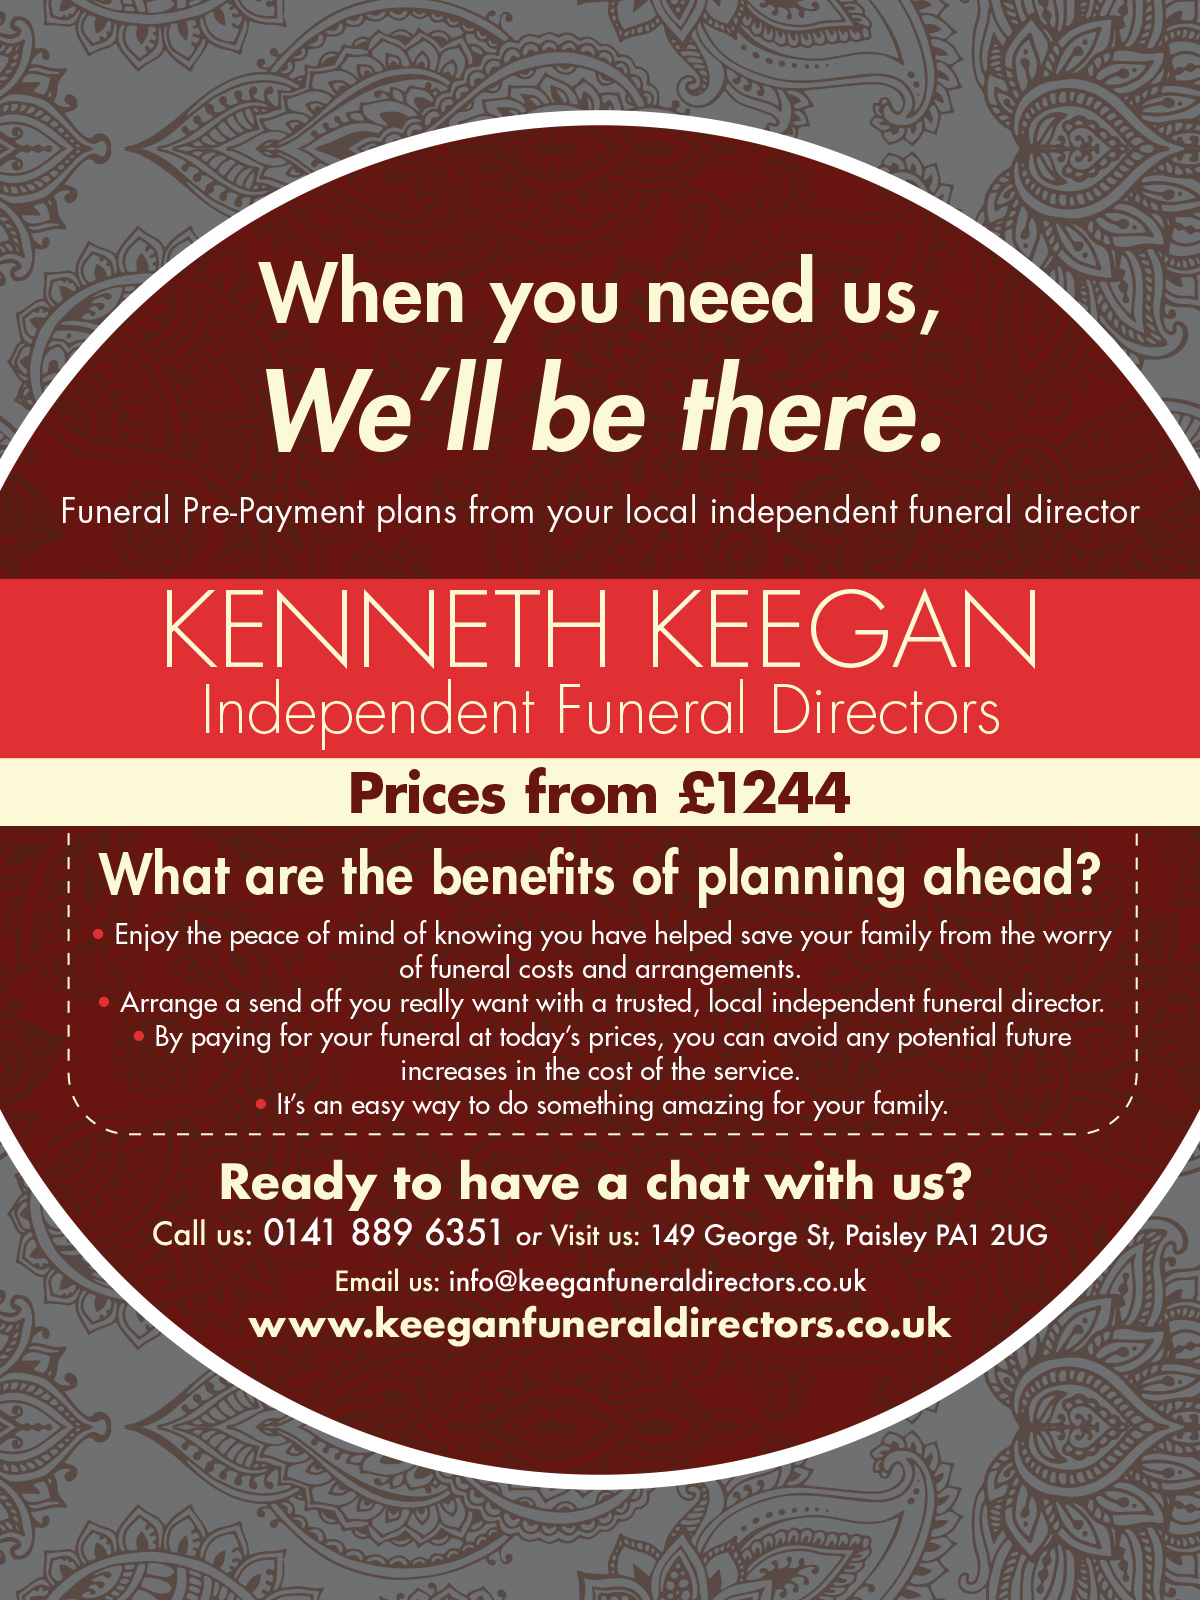 1200x1600px-Kenneth-Keegan-Social-Media-TV-SCREEN-Adverts-01-12-2020